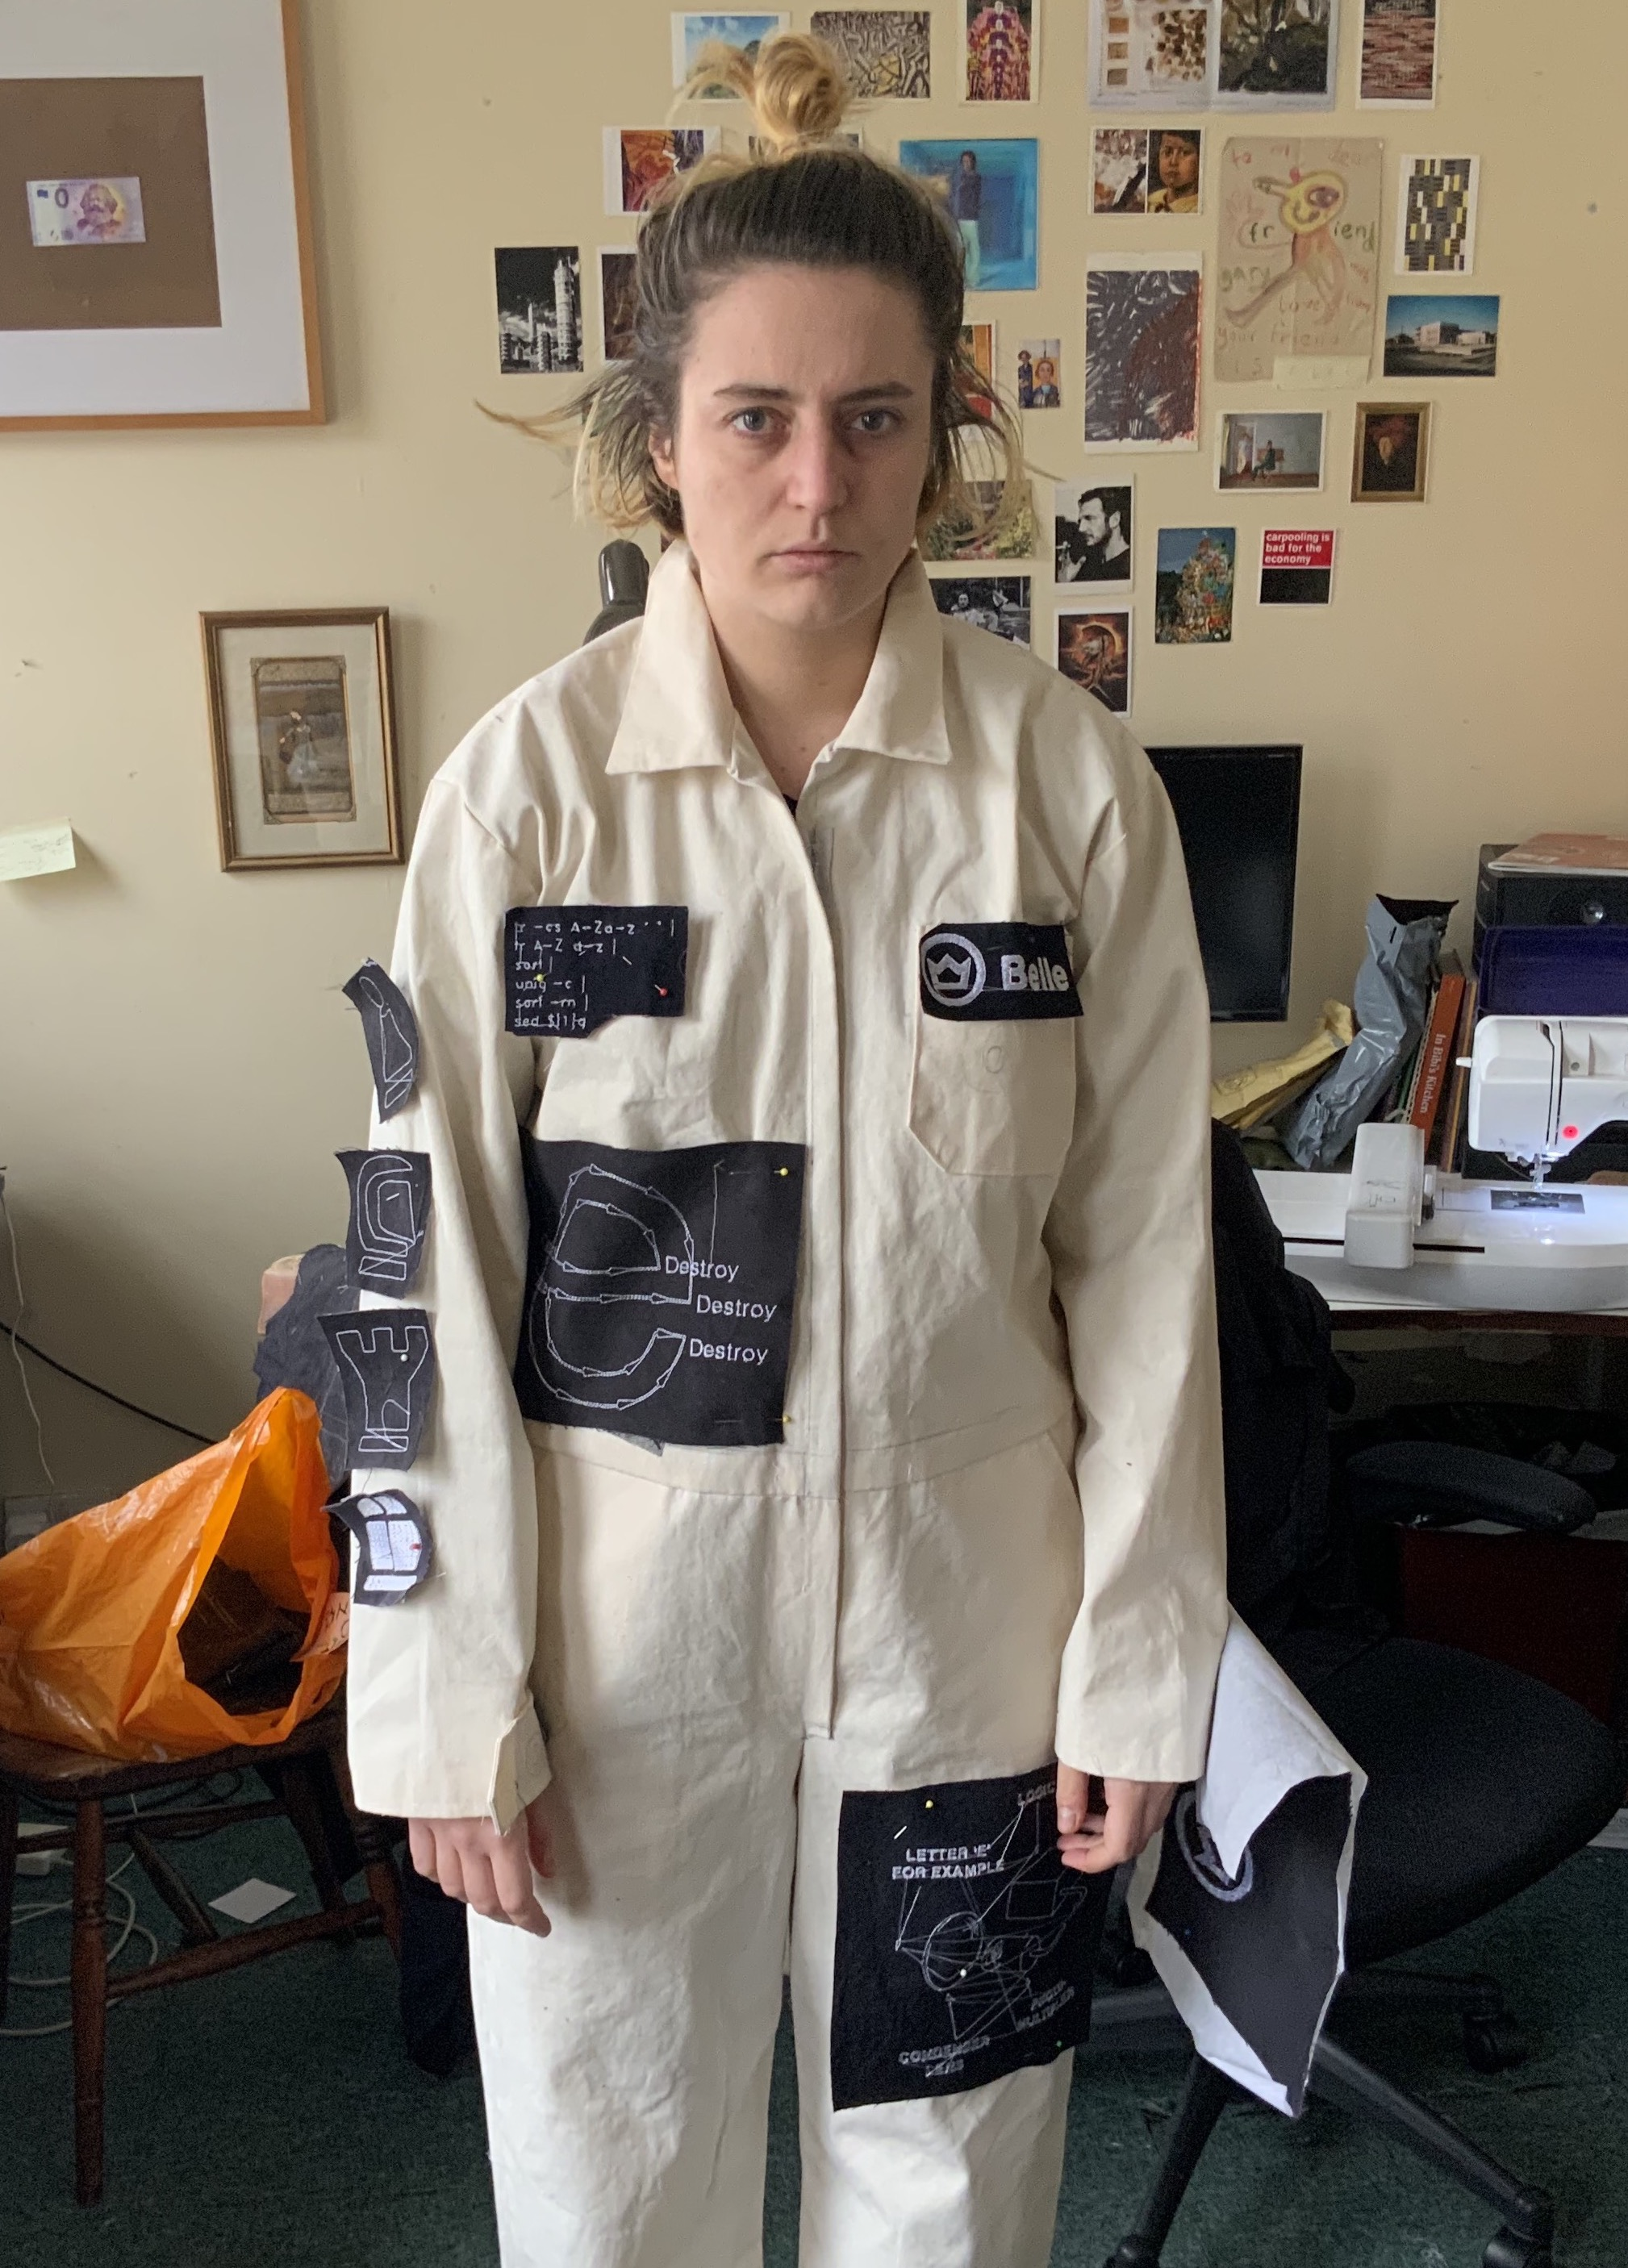 testing patches pinned to suit (but I look sad)